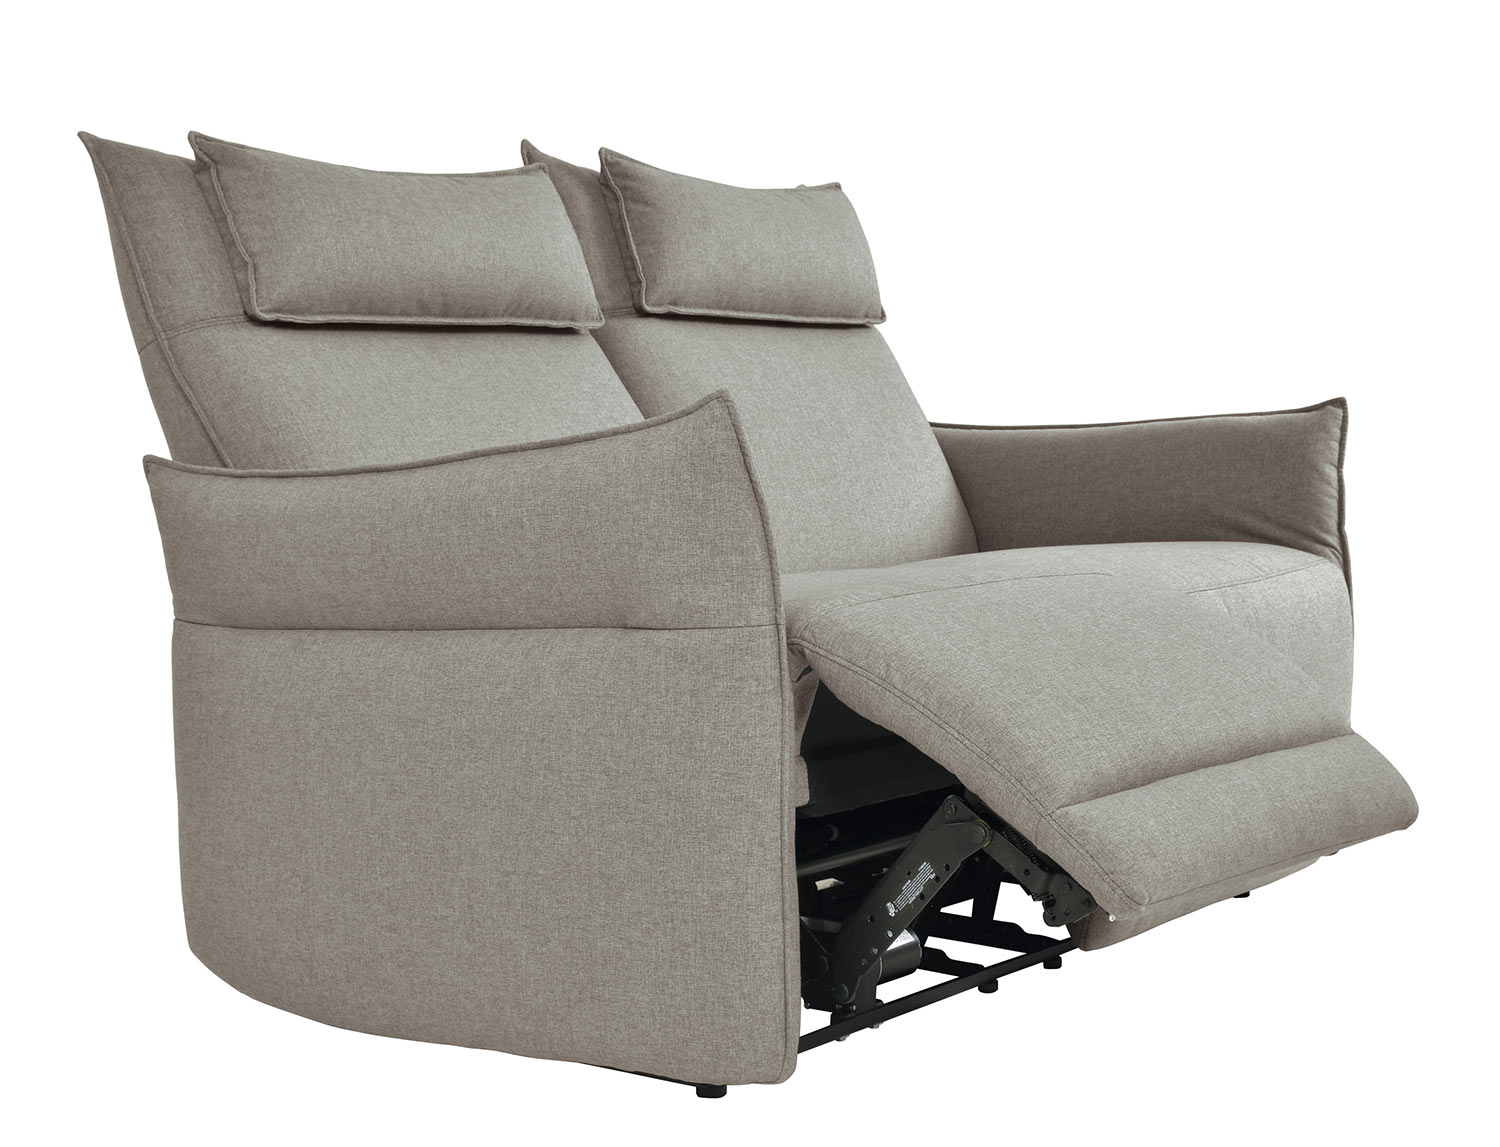 Homelegance Linette Power Double Reclining Love Seat with Power Headrests - Taupe